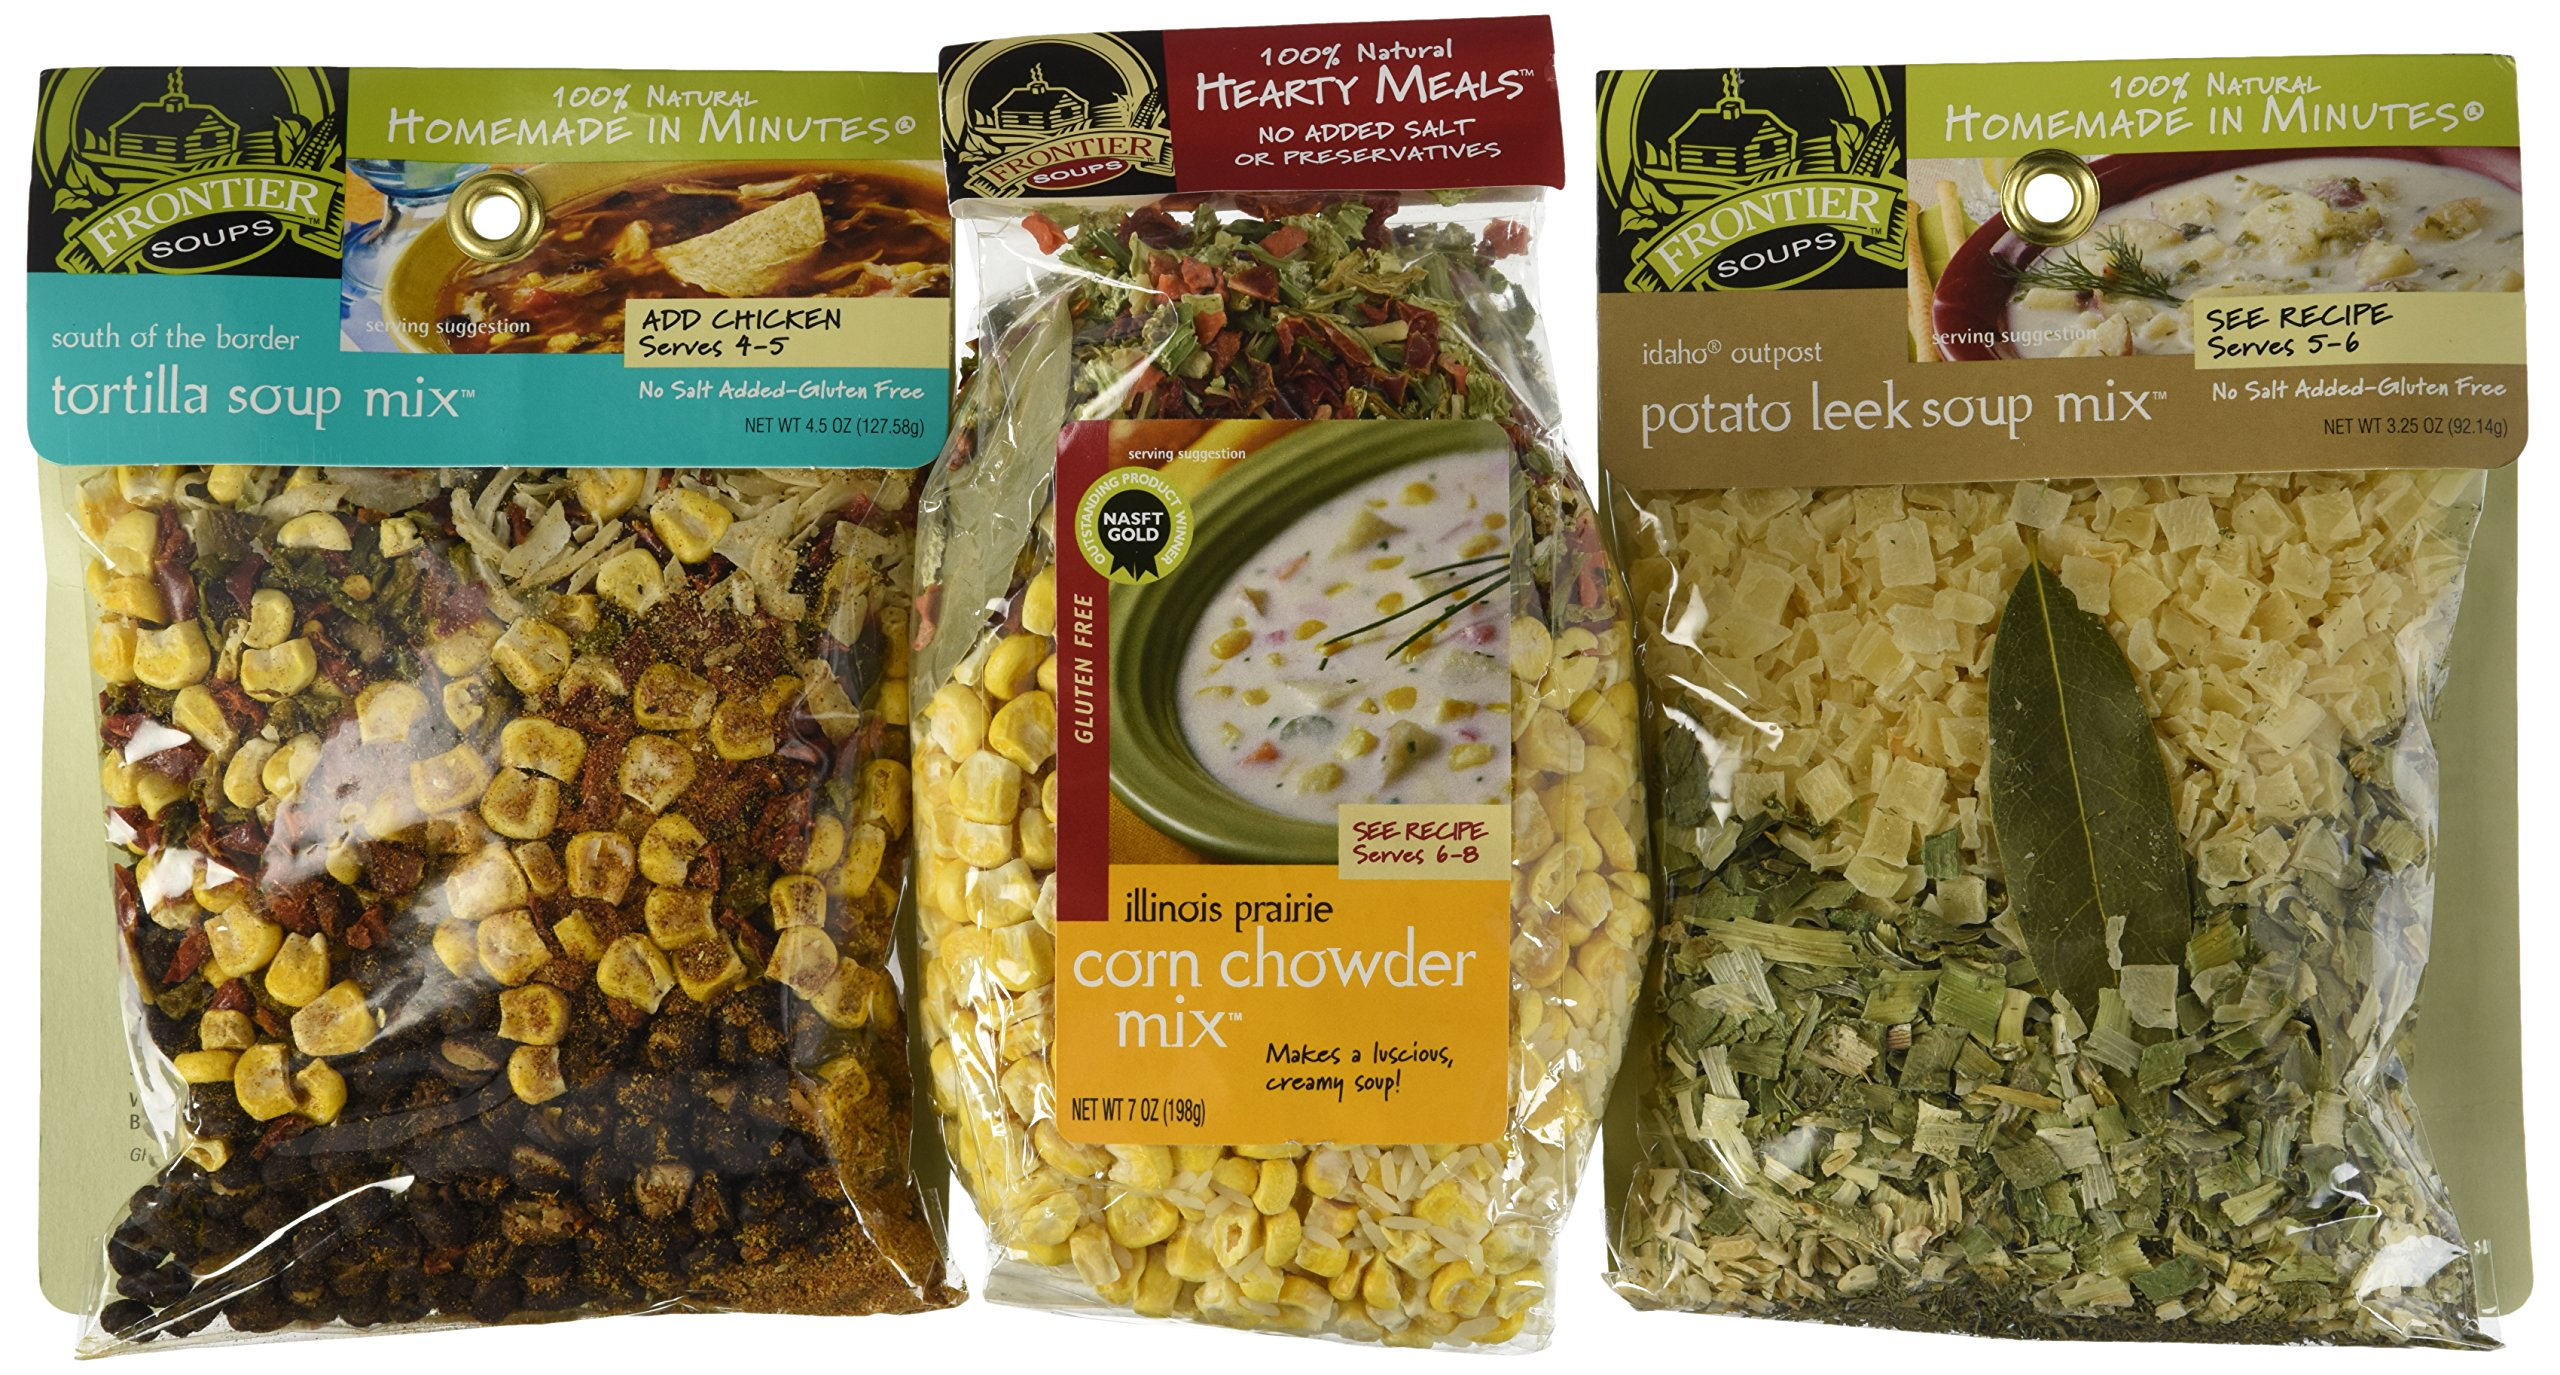 Frontier Soups 100% Natural Homemade In Minutes Gluten-Free Soup Mix 3 Flavor Variety Bundle: (1) South Of The Border Tortilla Soup Mix, (1) Illinois Prairie Corn Corn Chowder Mix, and (1) Idaho Outpost Potato Leek Soup Mix, 3.25-7 Oz. Ea. by Frontier Soups